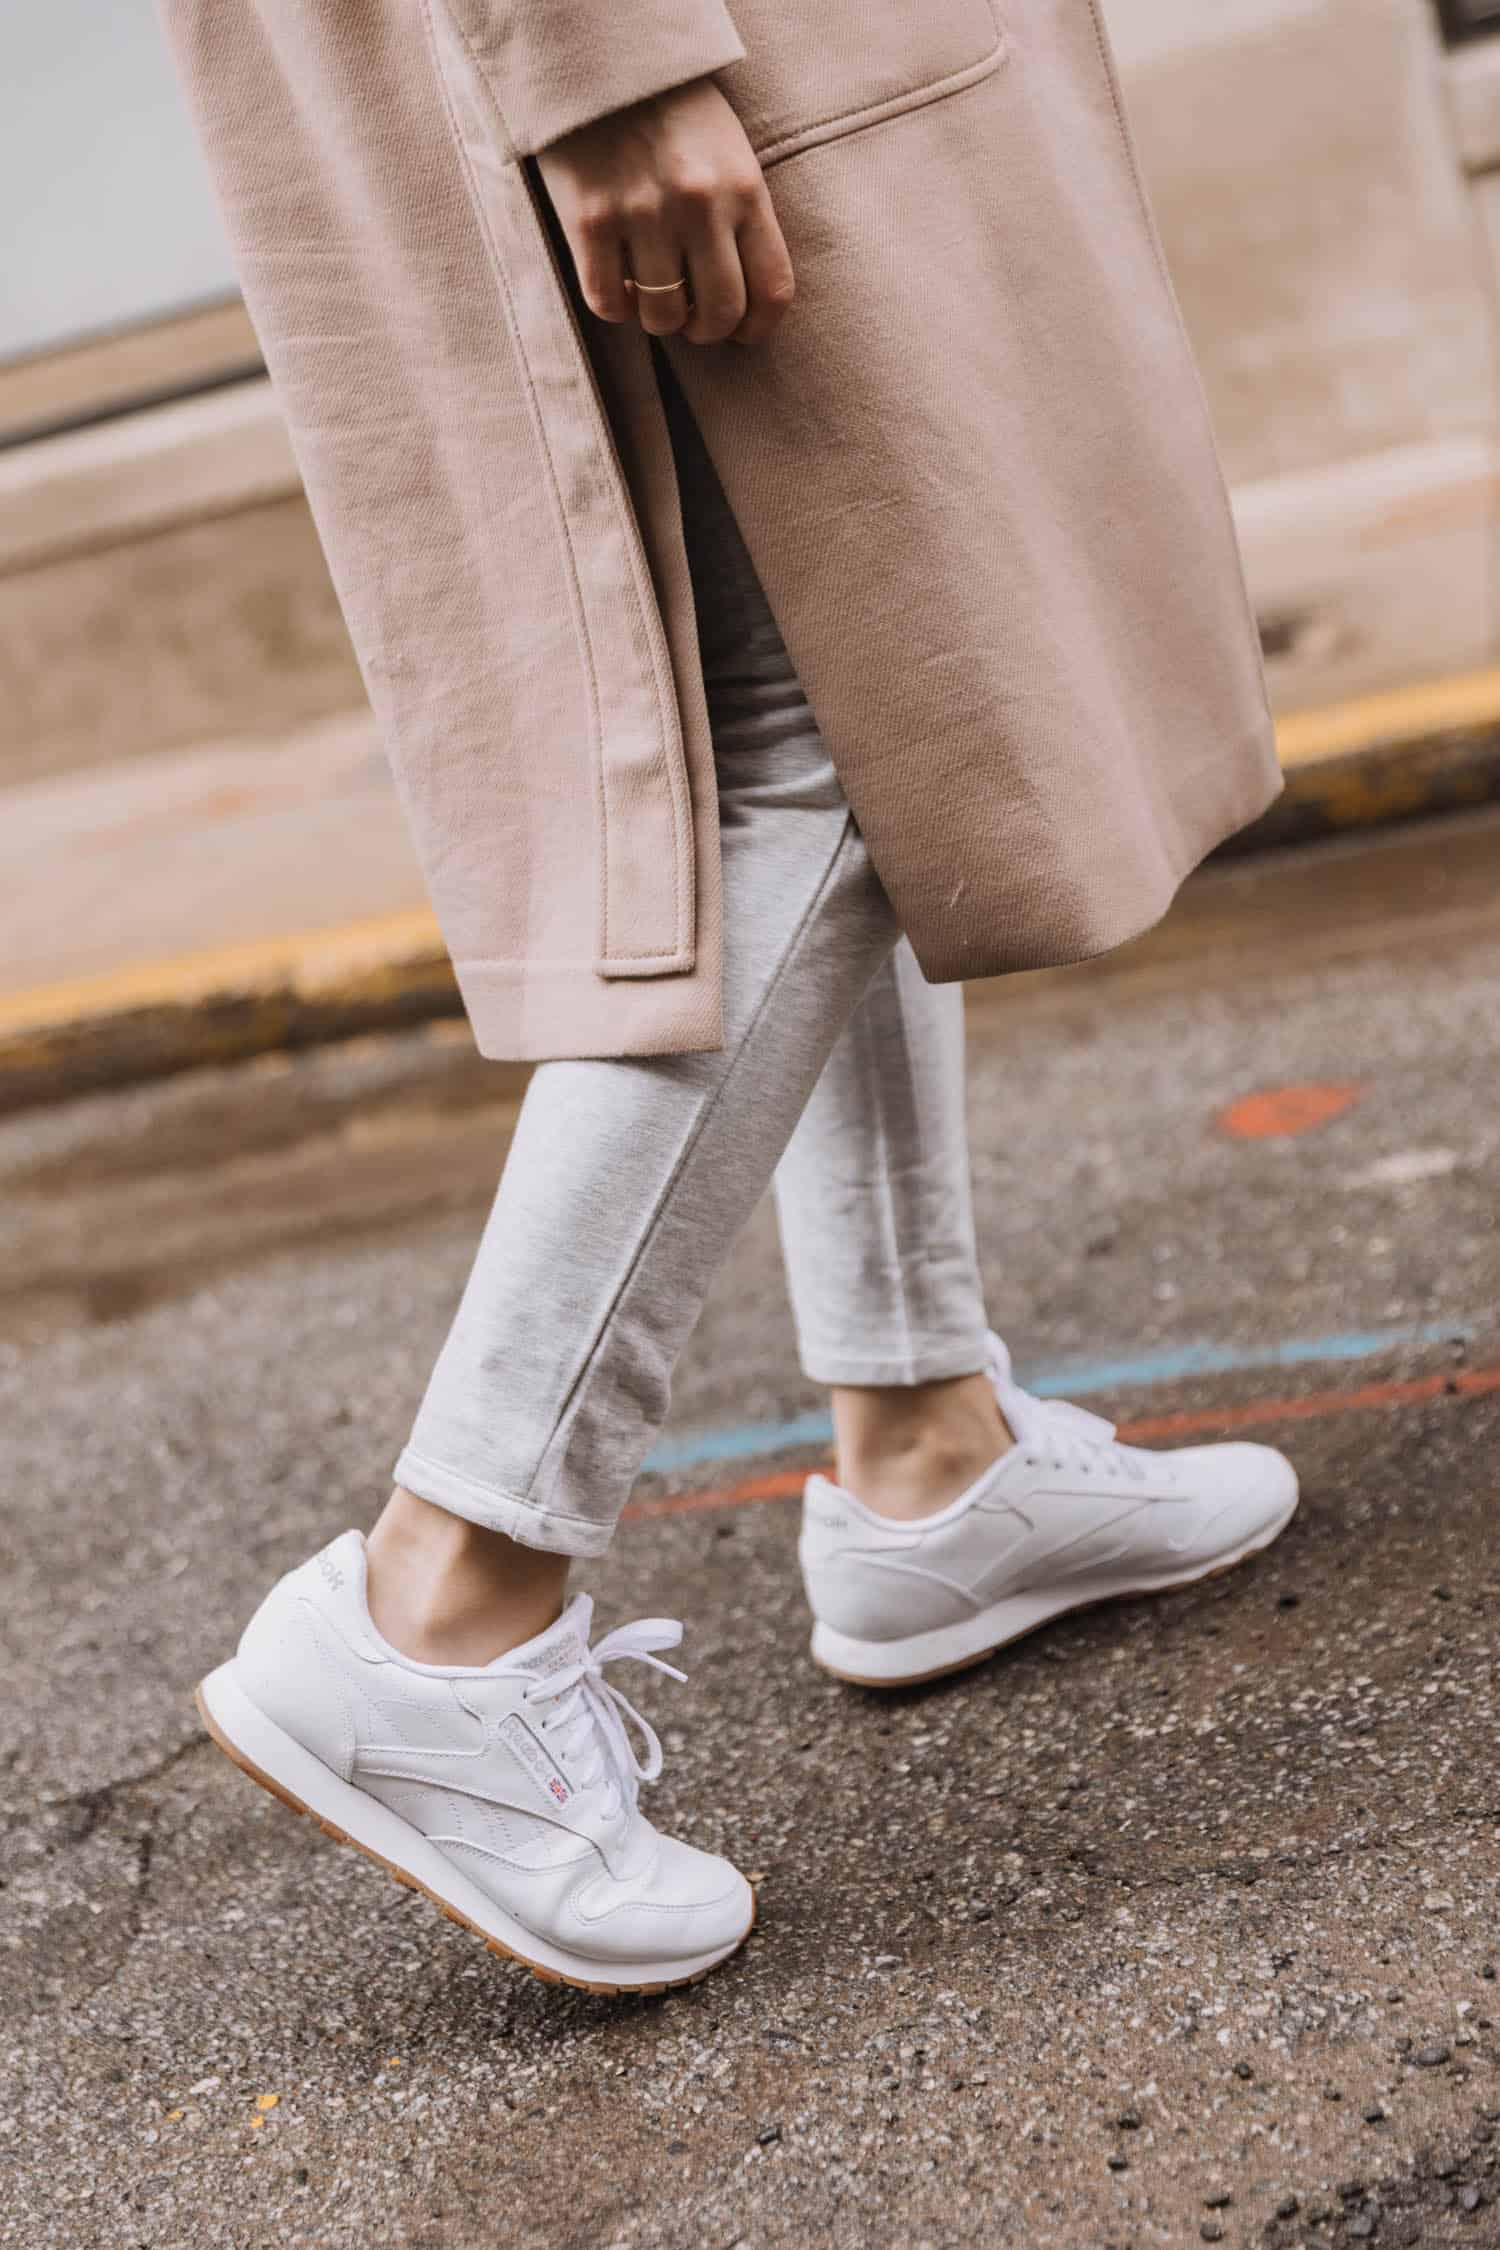 Reebok Sneakers and loungewear outfit